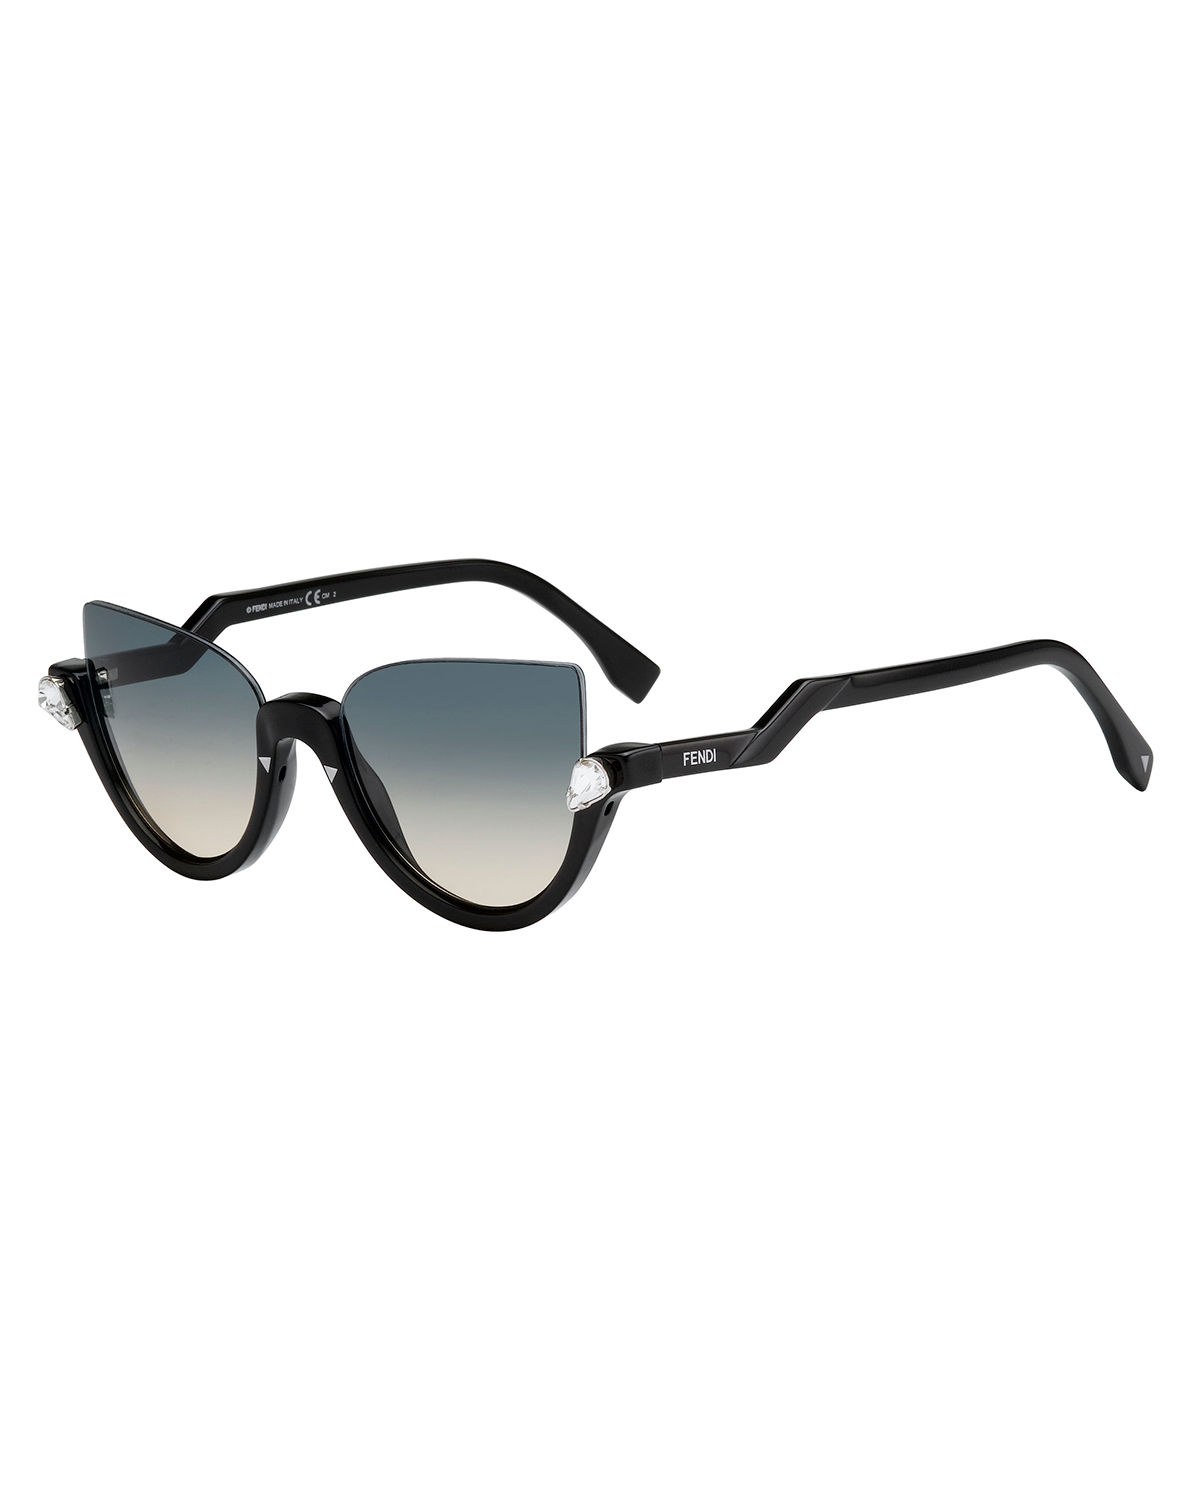 d0dacede5a8 Fendi Blink Half-Rim Crystal Cat-Eye Sunglasses